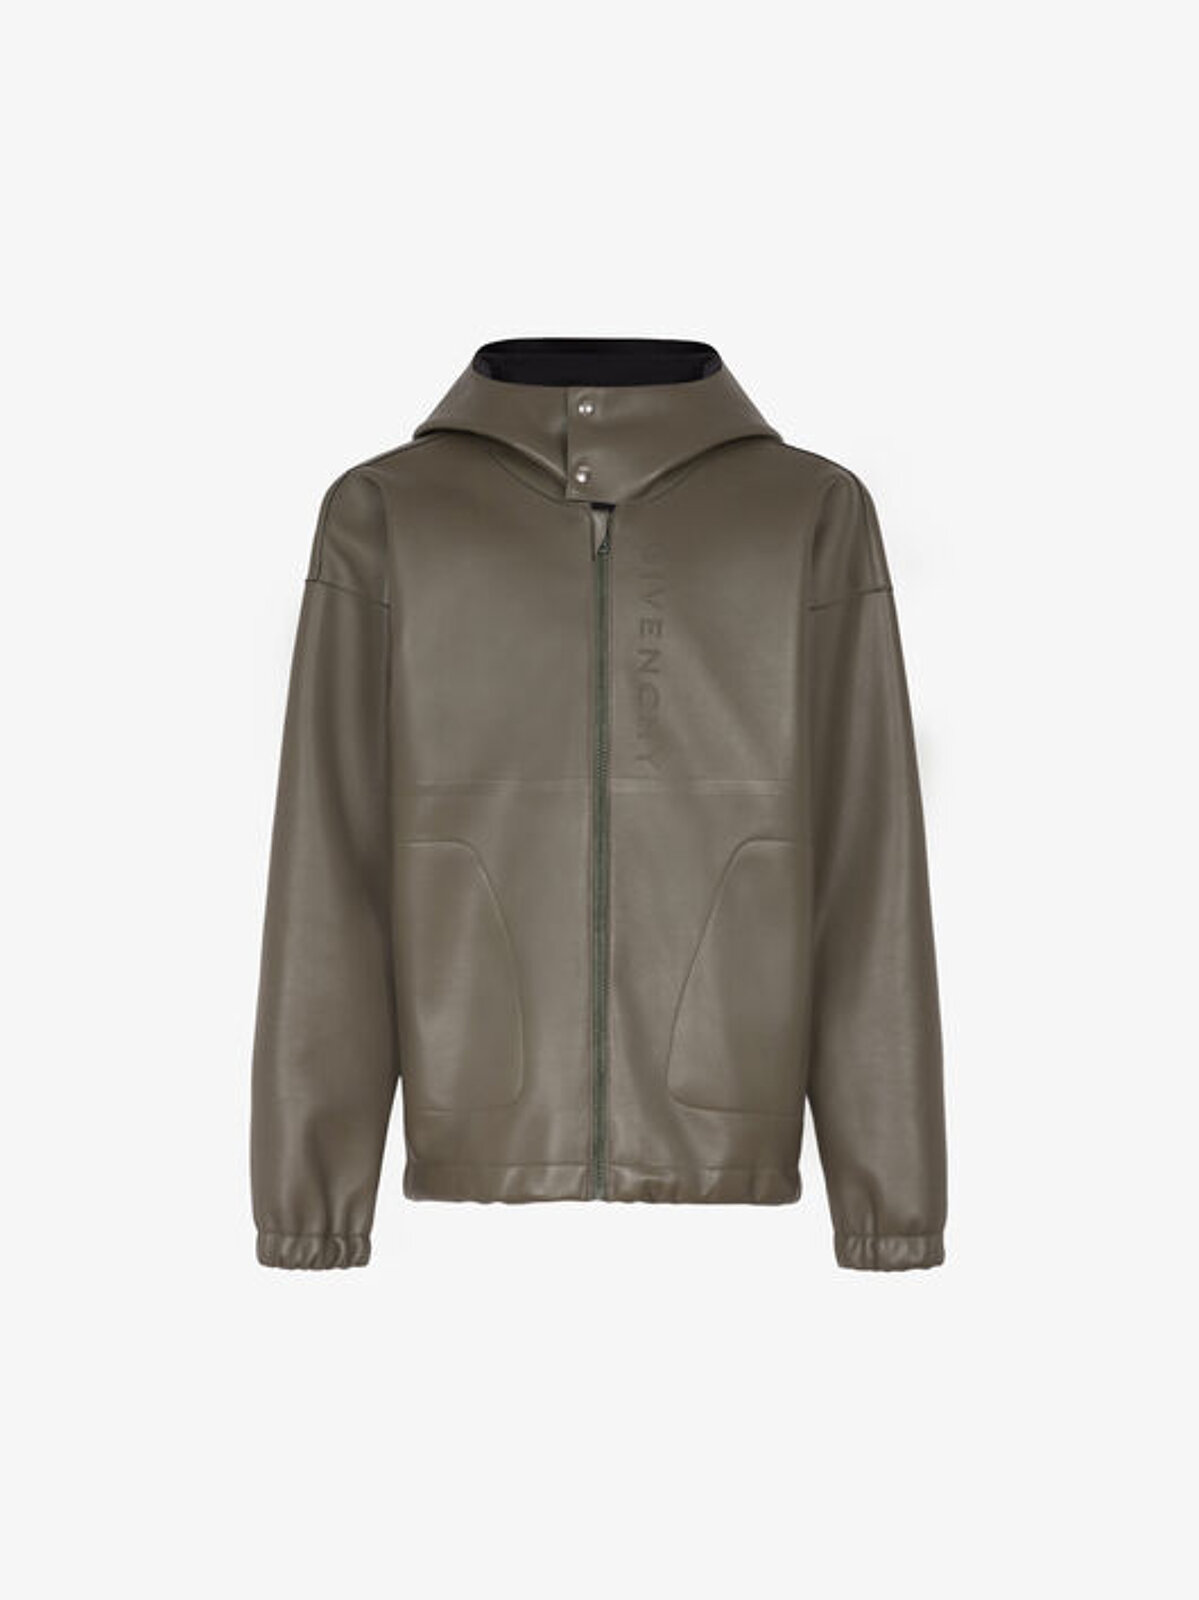 GIVENCHY hooded leather jacket - Givenchy